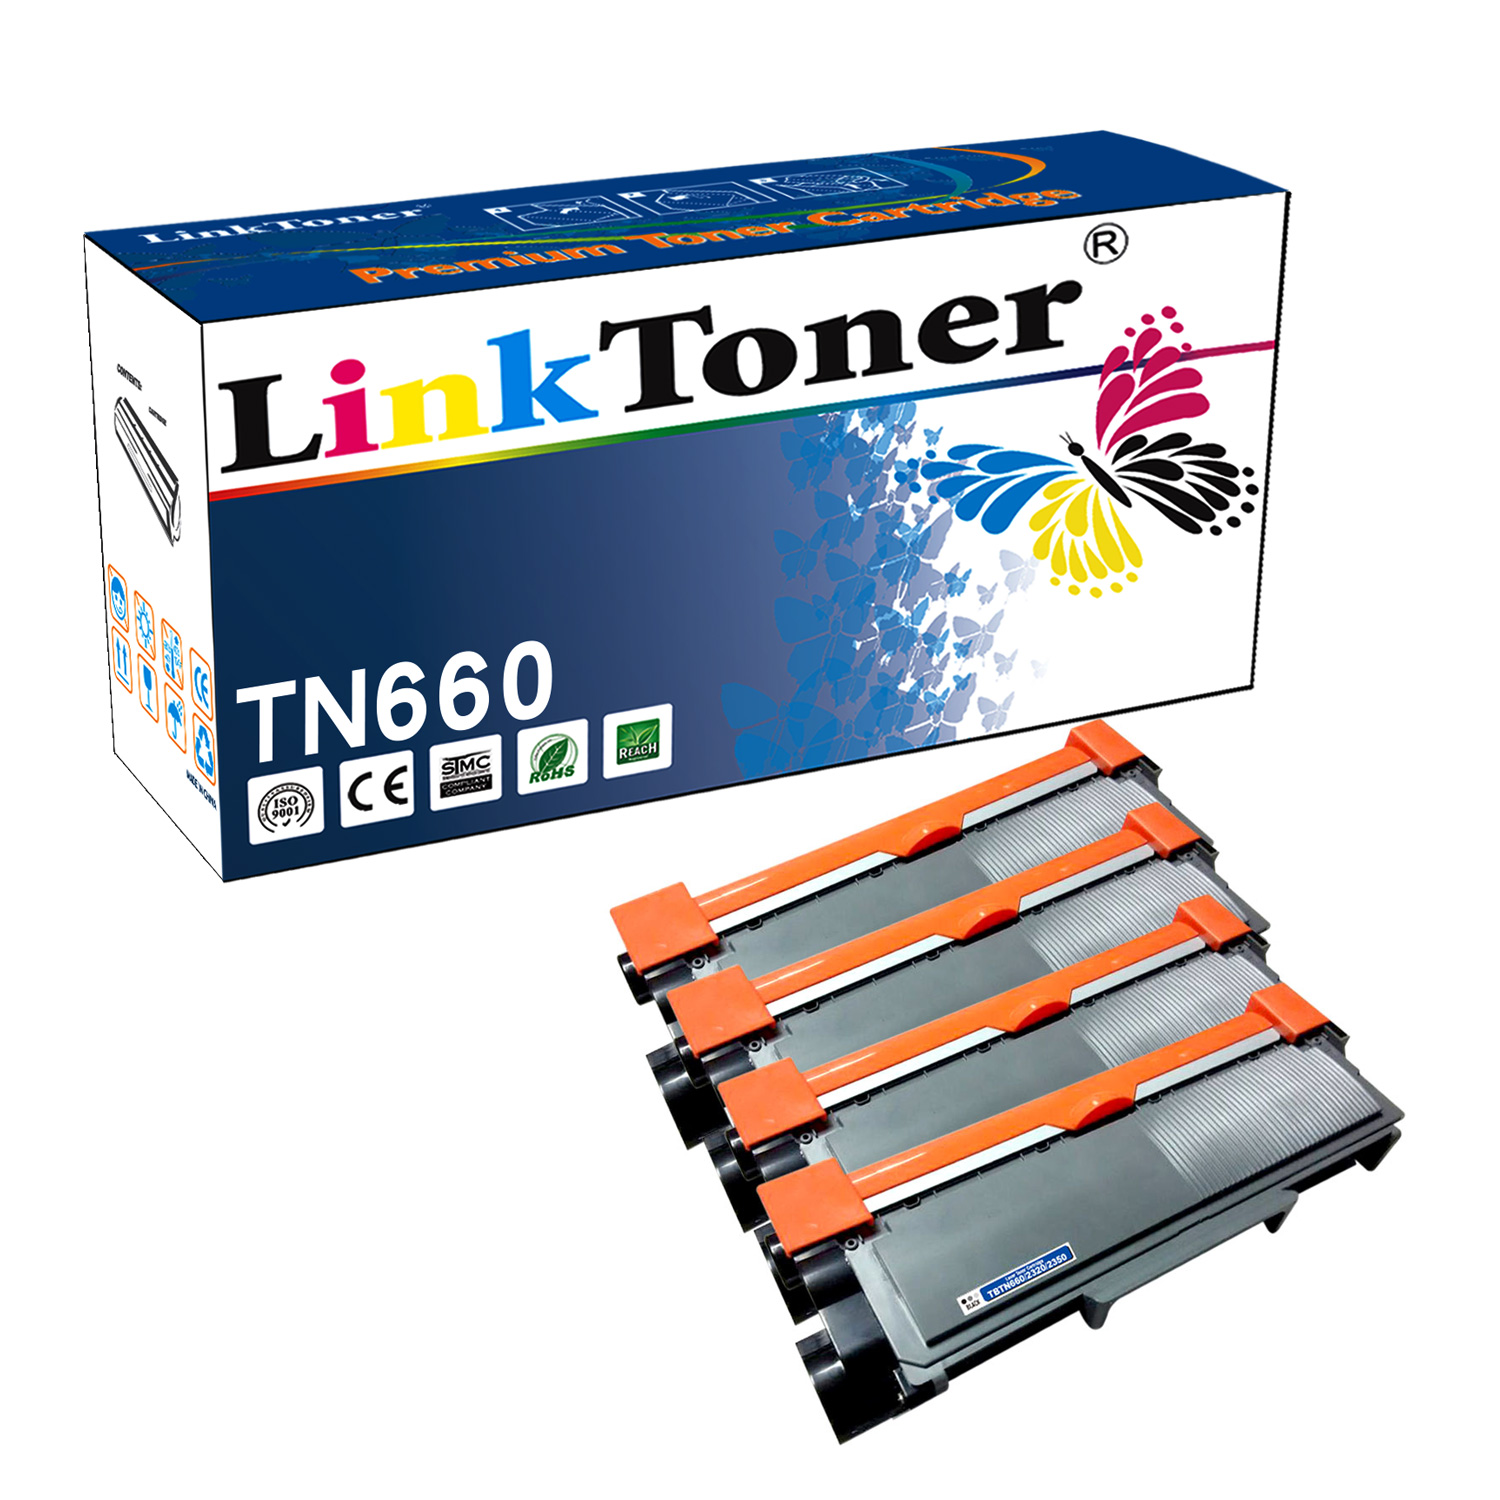 LinkToner Compatible Toner Cartridge Replacement for Brother TN660 BK 4 Pack Laser Photo Printer DCP-L2520D, DCP-L2520DW, DCP-L2540DN, DCP-L2540DW, DCP-L2560DW, HL-L2300D, HL-L2305W, HL-L2315DW, HL-L2